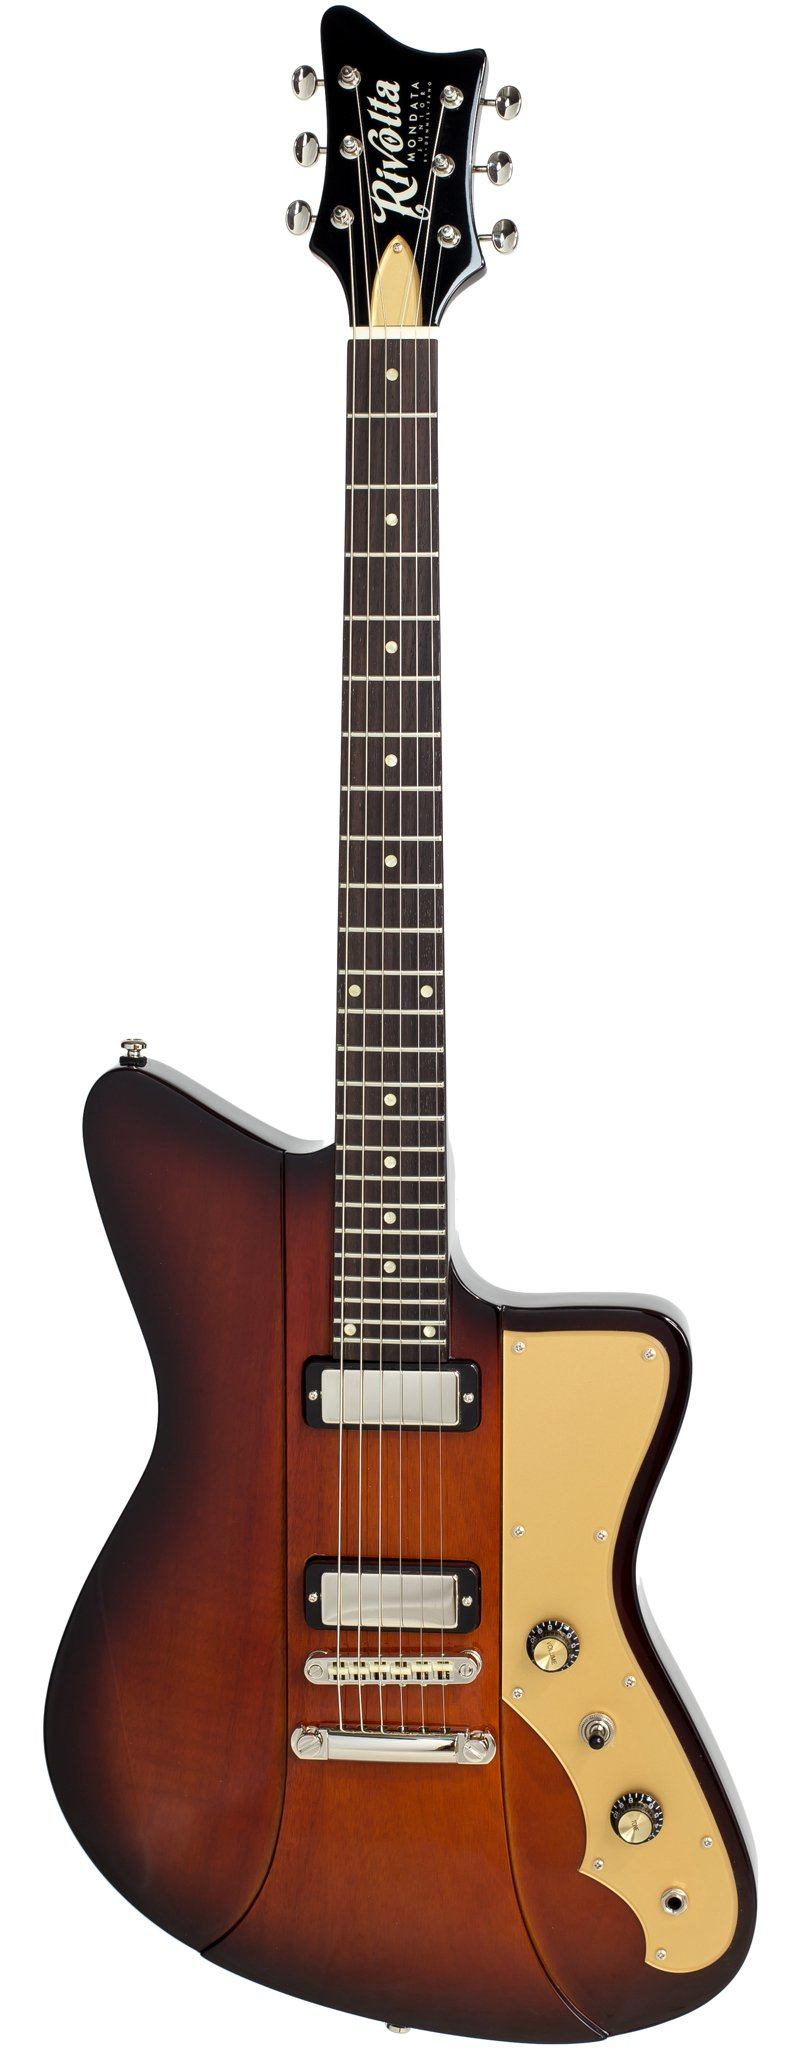 Eastwood Guitars Rivolta Mondata JR Fuoco Burst Full Front